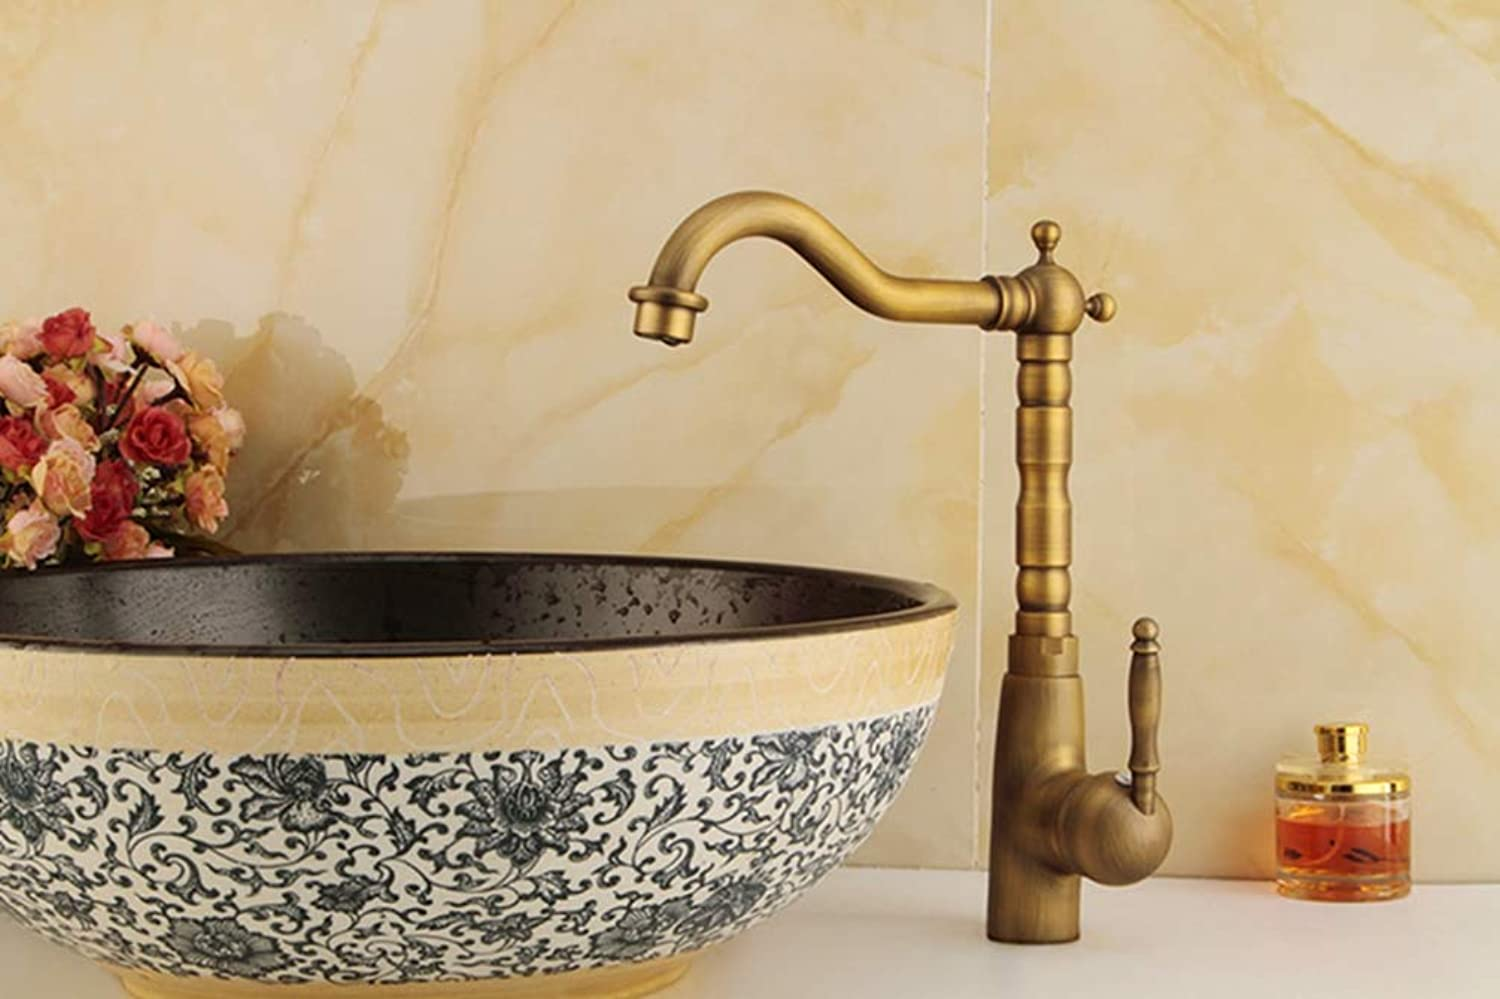 FZHLR Kitchen Faucet Antique Bronze Faucet for Kitchen Mixer Tap with Ceramic Crane Cold and Hot Kitchen Sink Tap Water Mixers Brass,Antique Tall